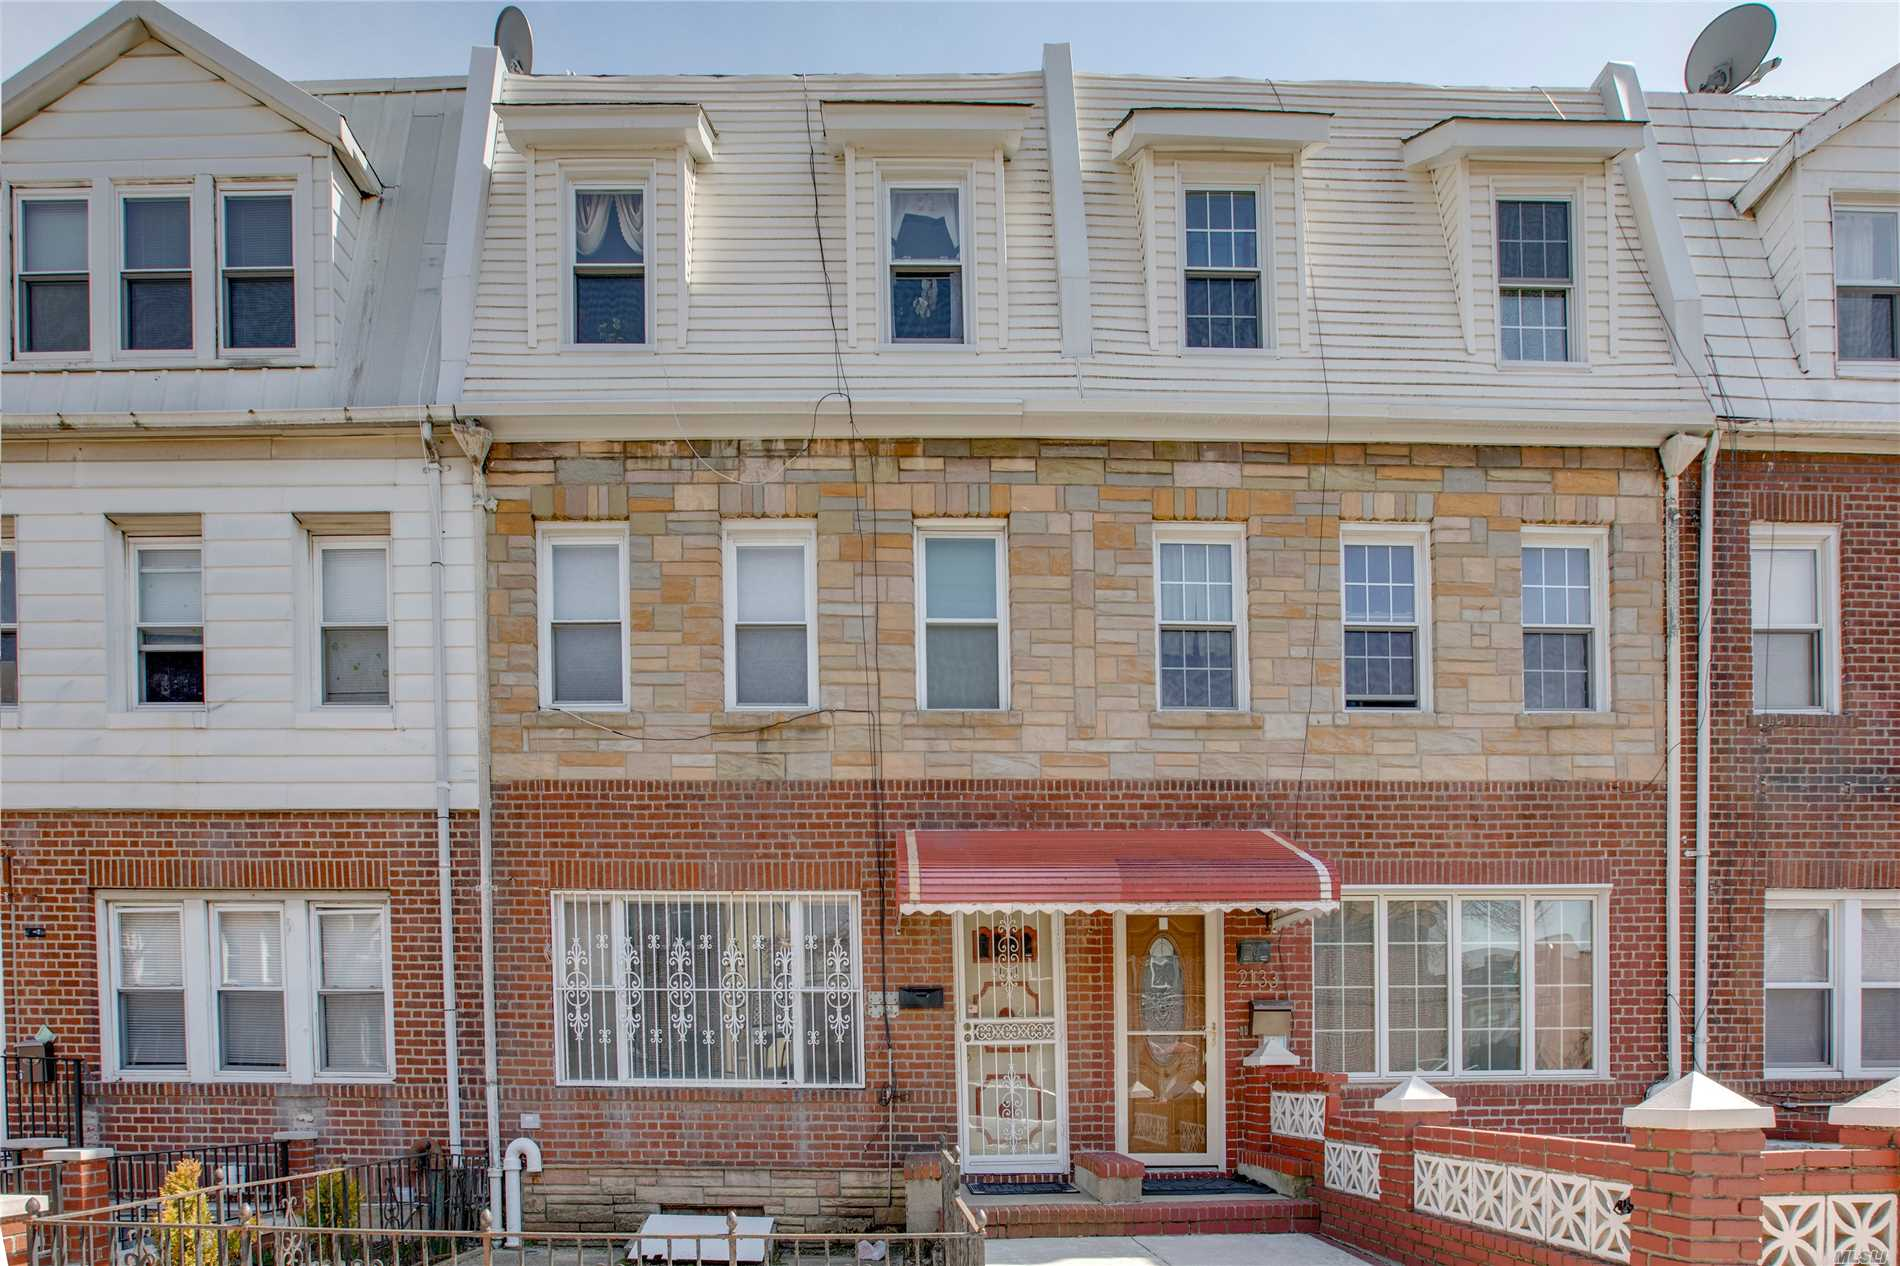 New on the Market!! Lower Ditmars Legal Two family Town house with options! Home is currently used as a one bedroom simplex over a two bedroom duplex and finished basement, rear yard and a detached garage.  Potential conversion to a Three bedroom Duplex over a One bedroom Duplex apartment. Ideal location only 1/2 block to PS 122, and midway between Ditmars Blvd N, W Subway station,  many culturally enriched restaurants,  lounges and Astoria Park for recreational activities.